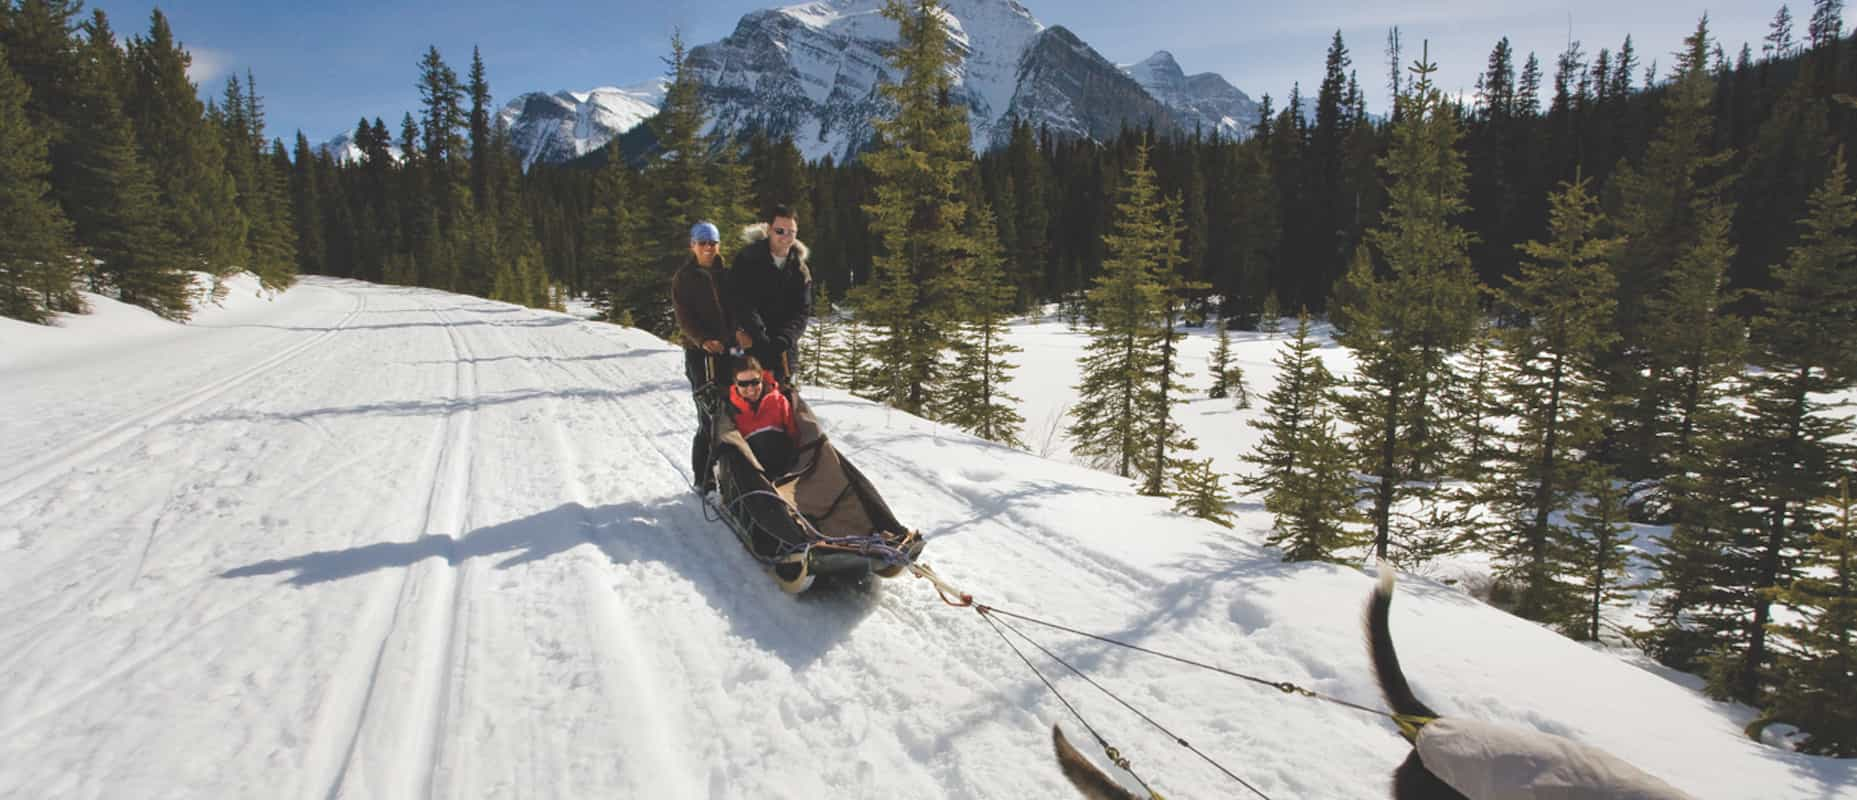 Experience dogsledding in Lake Louise in the Canadian Rockies